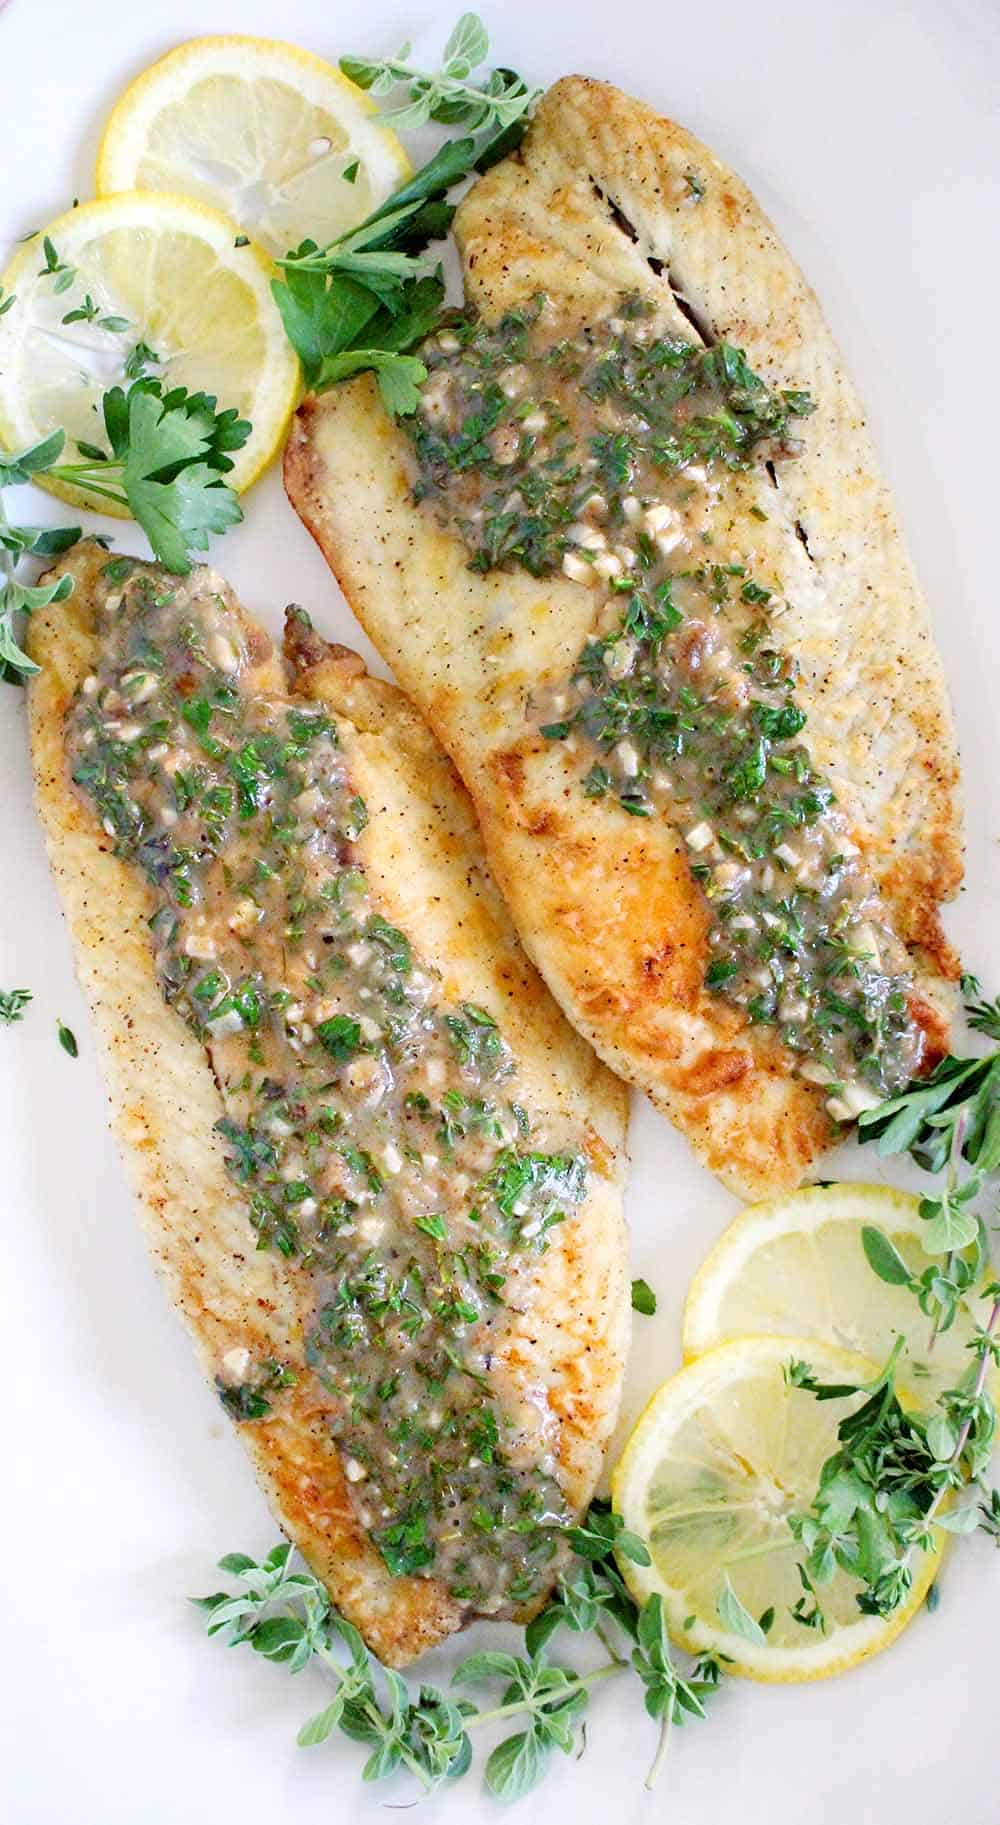 Pan-fried Seabass with Garlic Lemon Butter Sauce